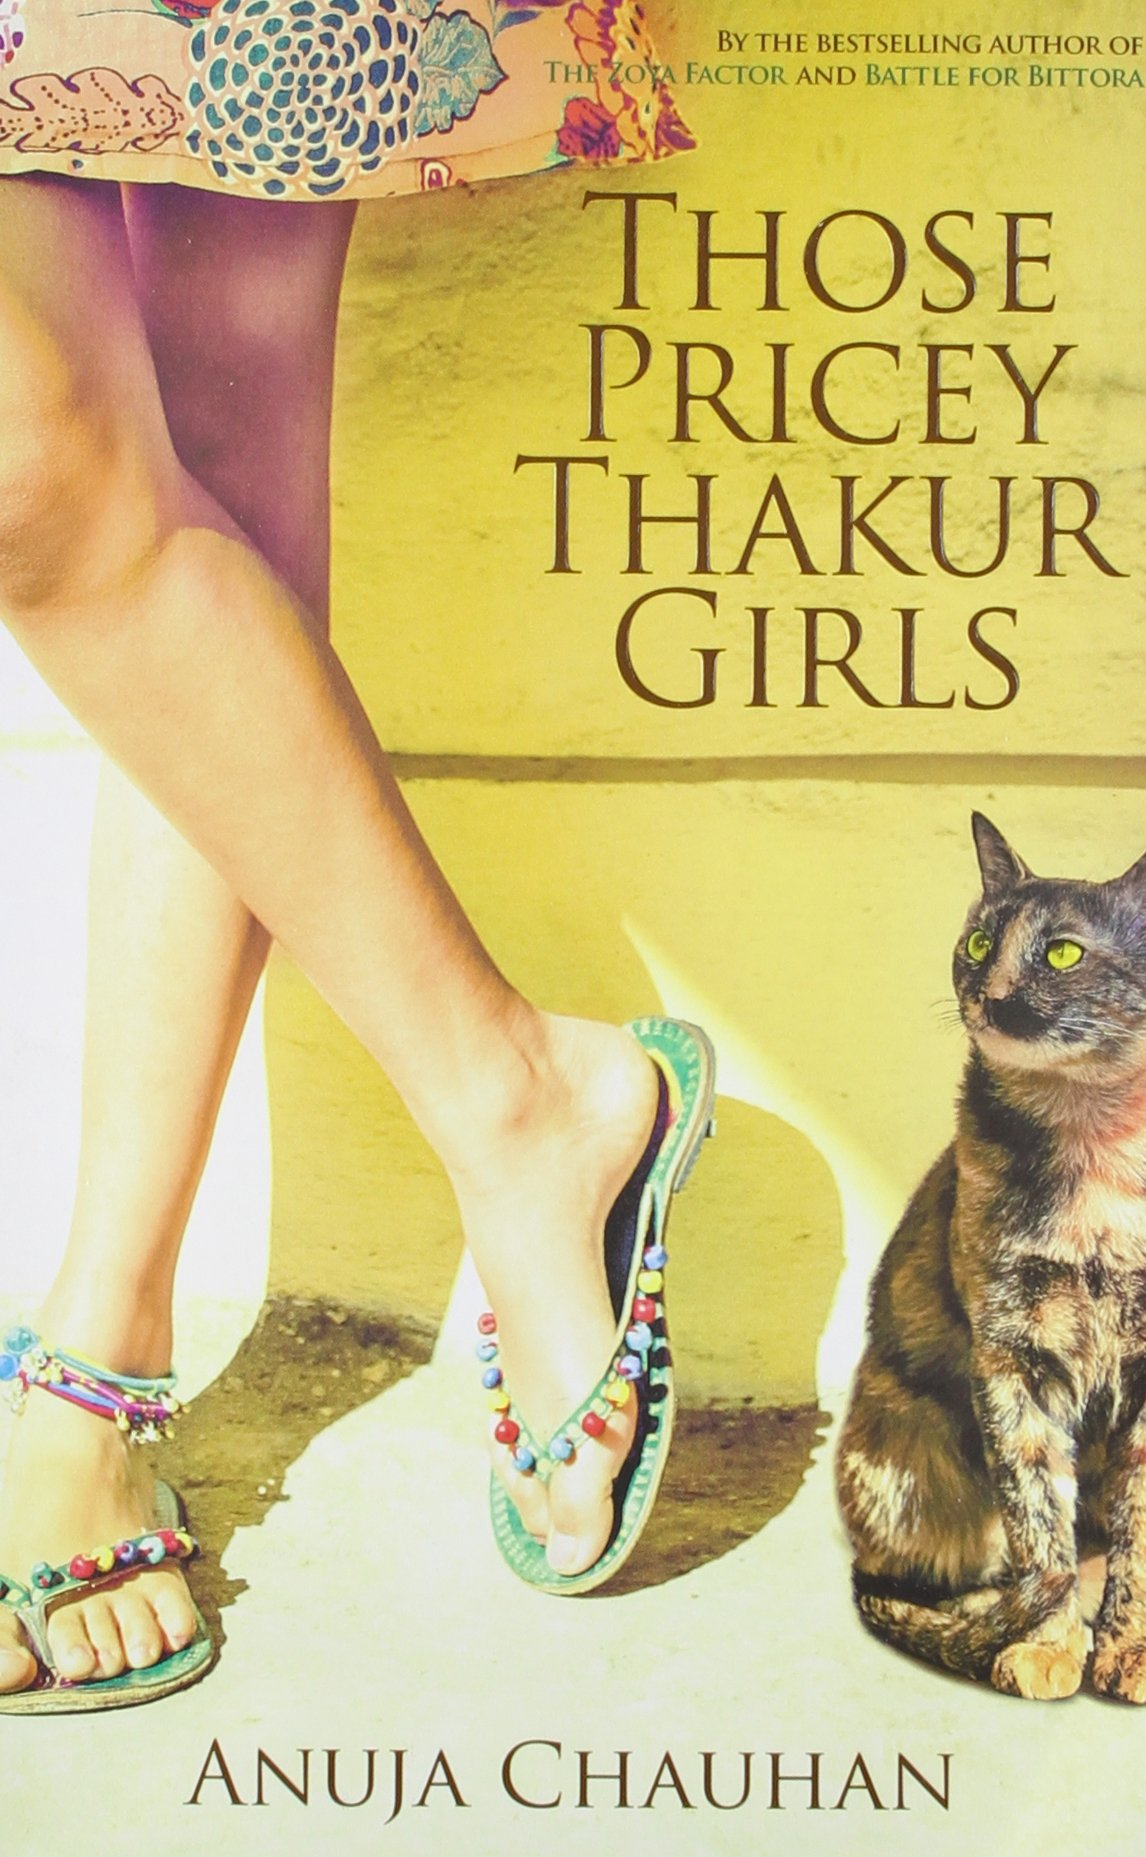 Image result for those pricey thakur girls